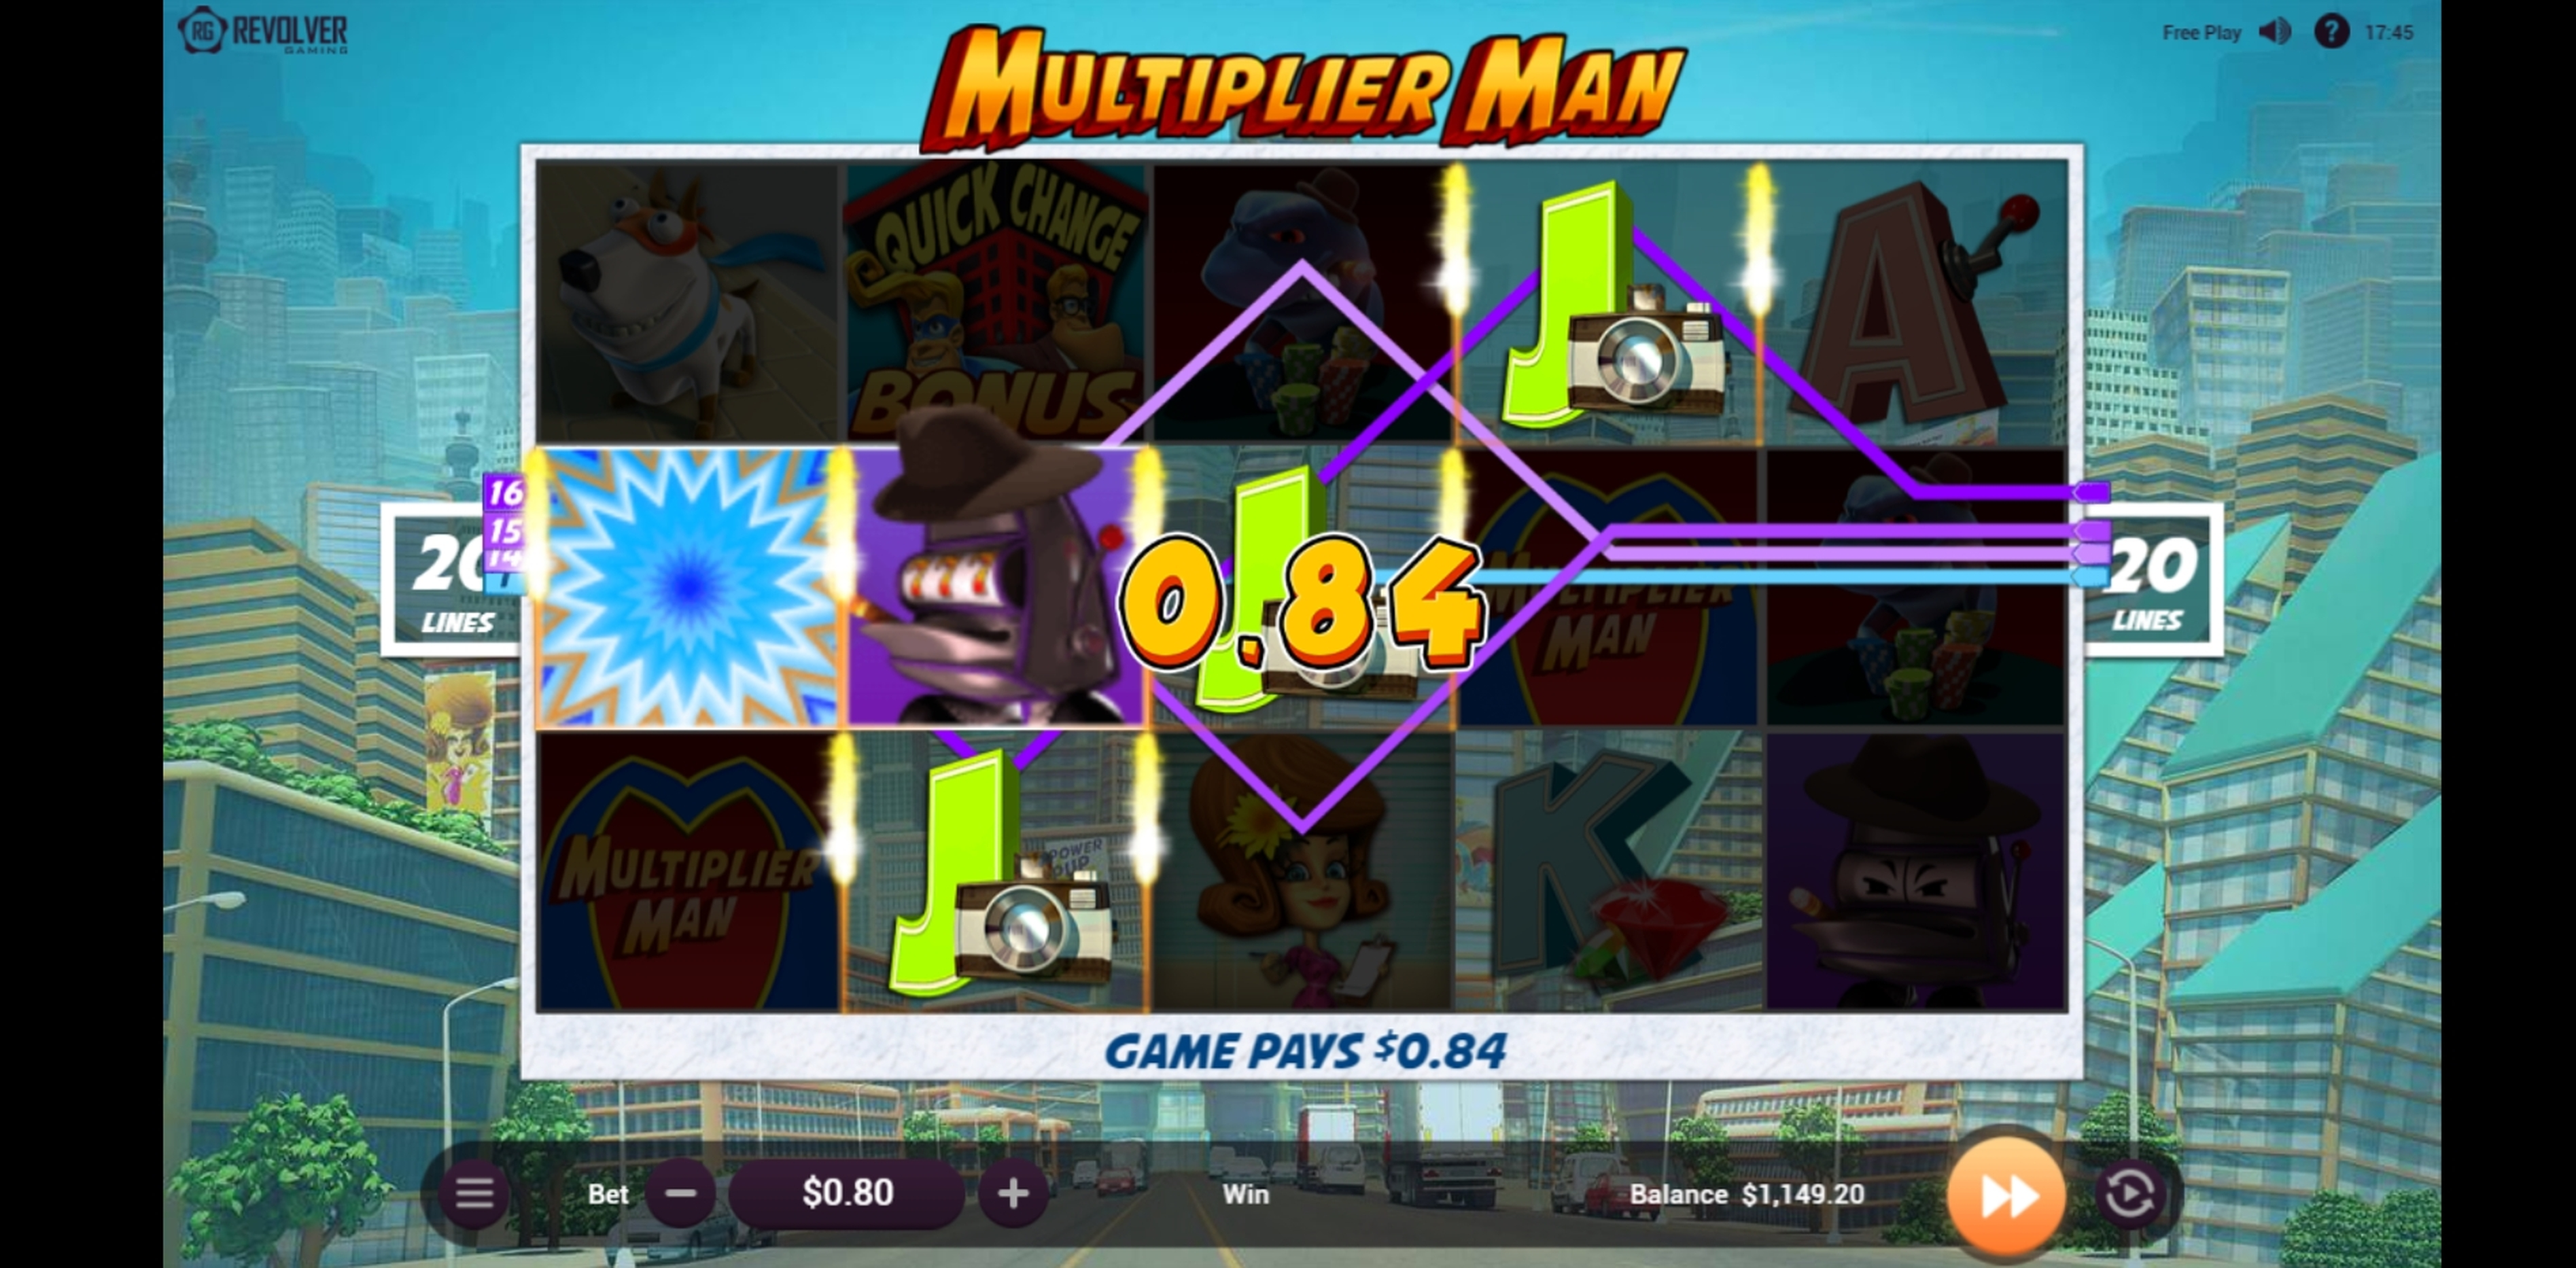 Win Money in Multiplier Man Free Slot Game by Revolver Gaming